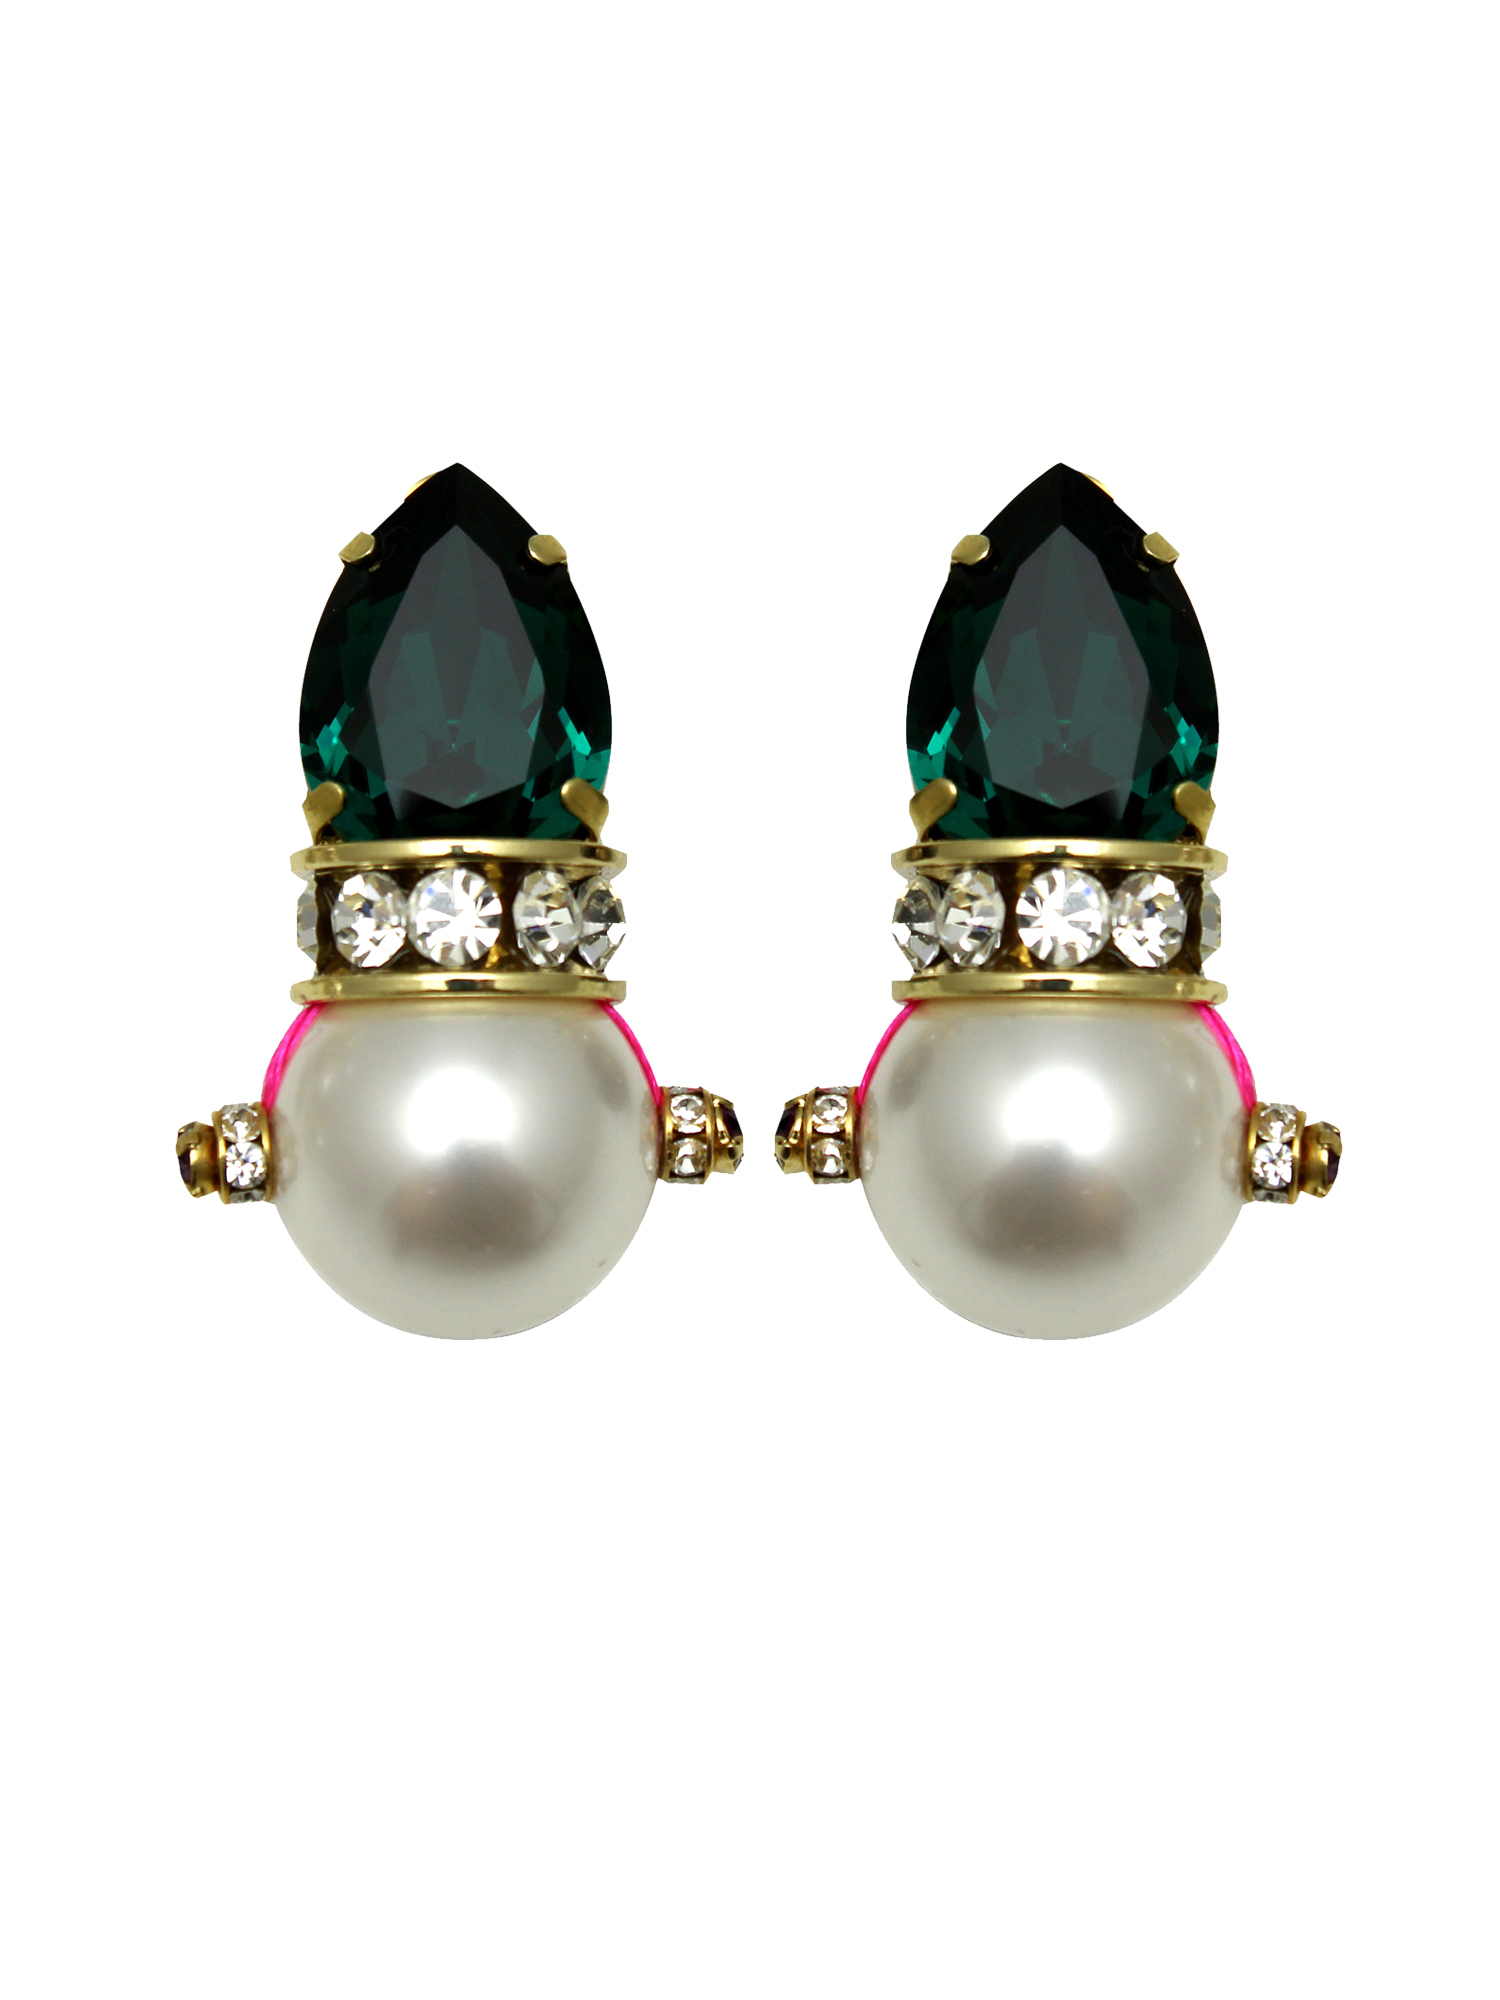 180E-GW Aragon Earrings - Green_White.jpg